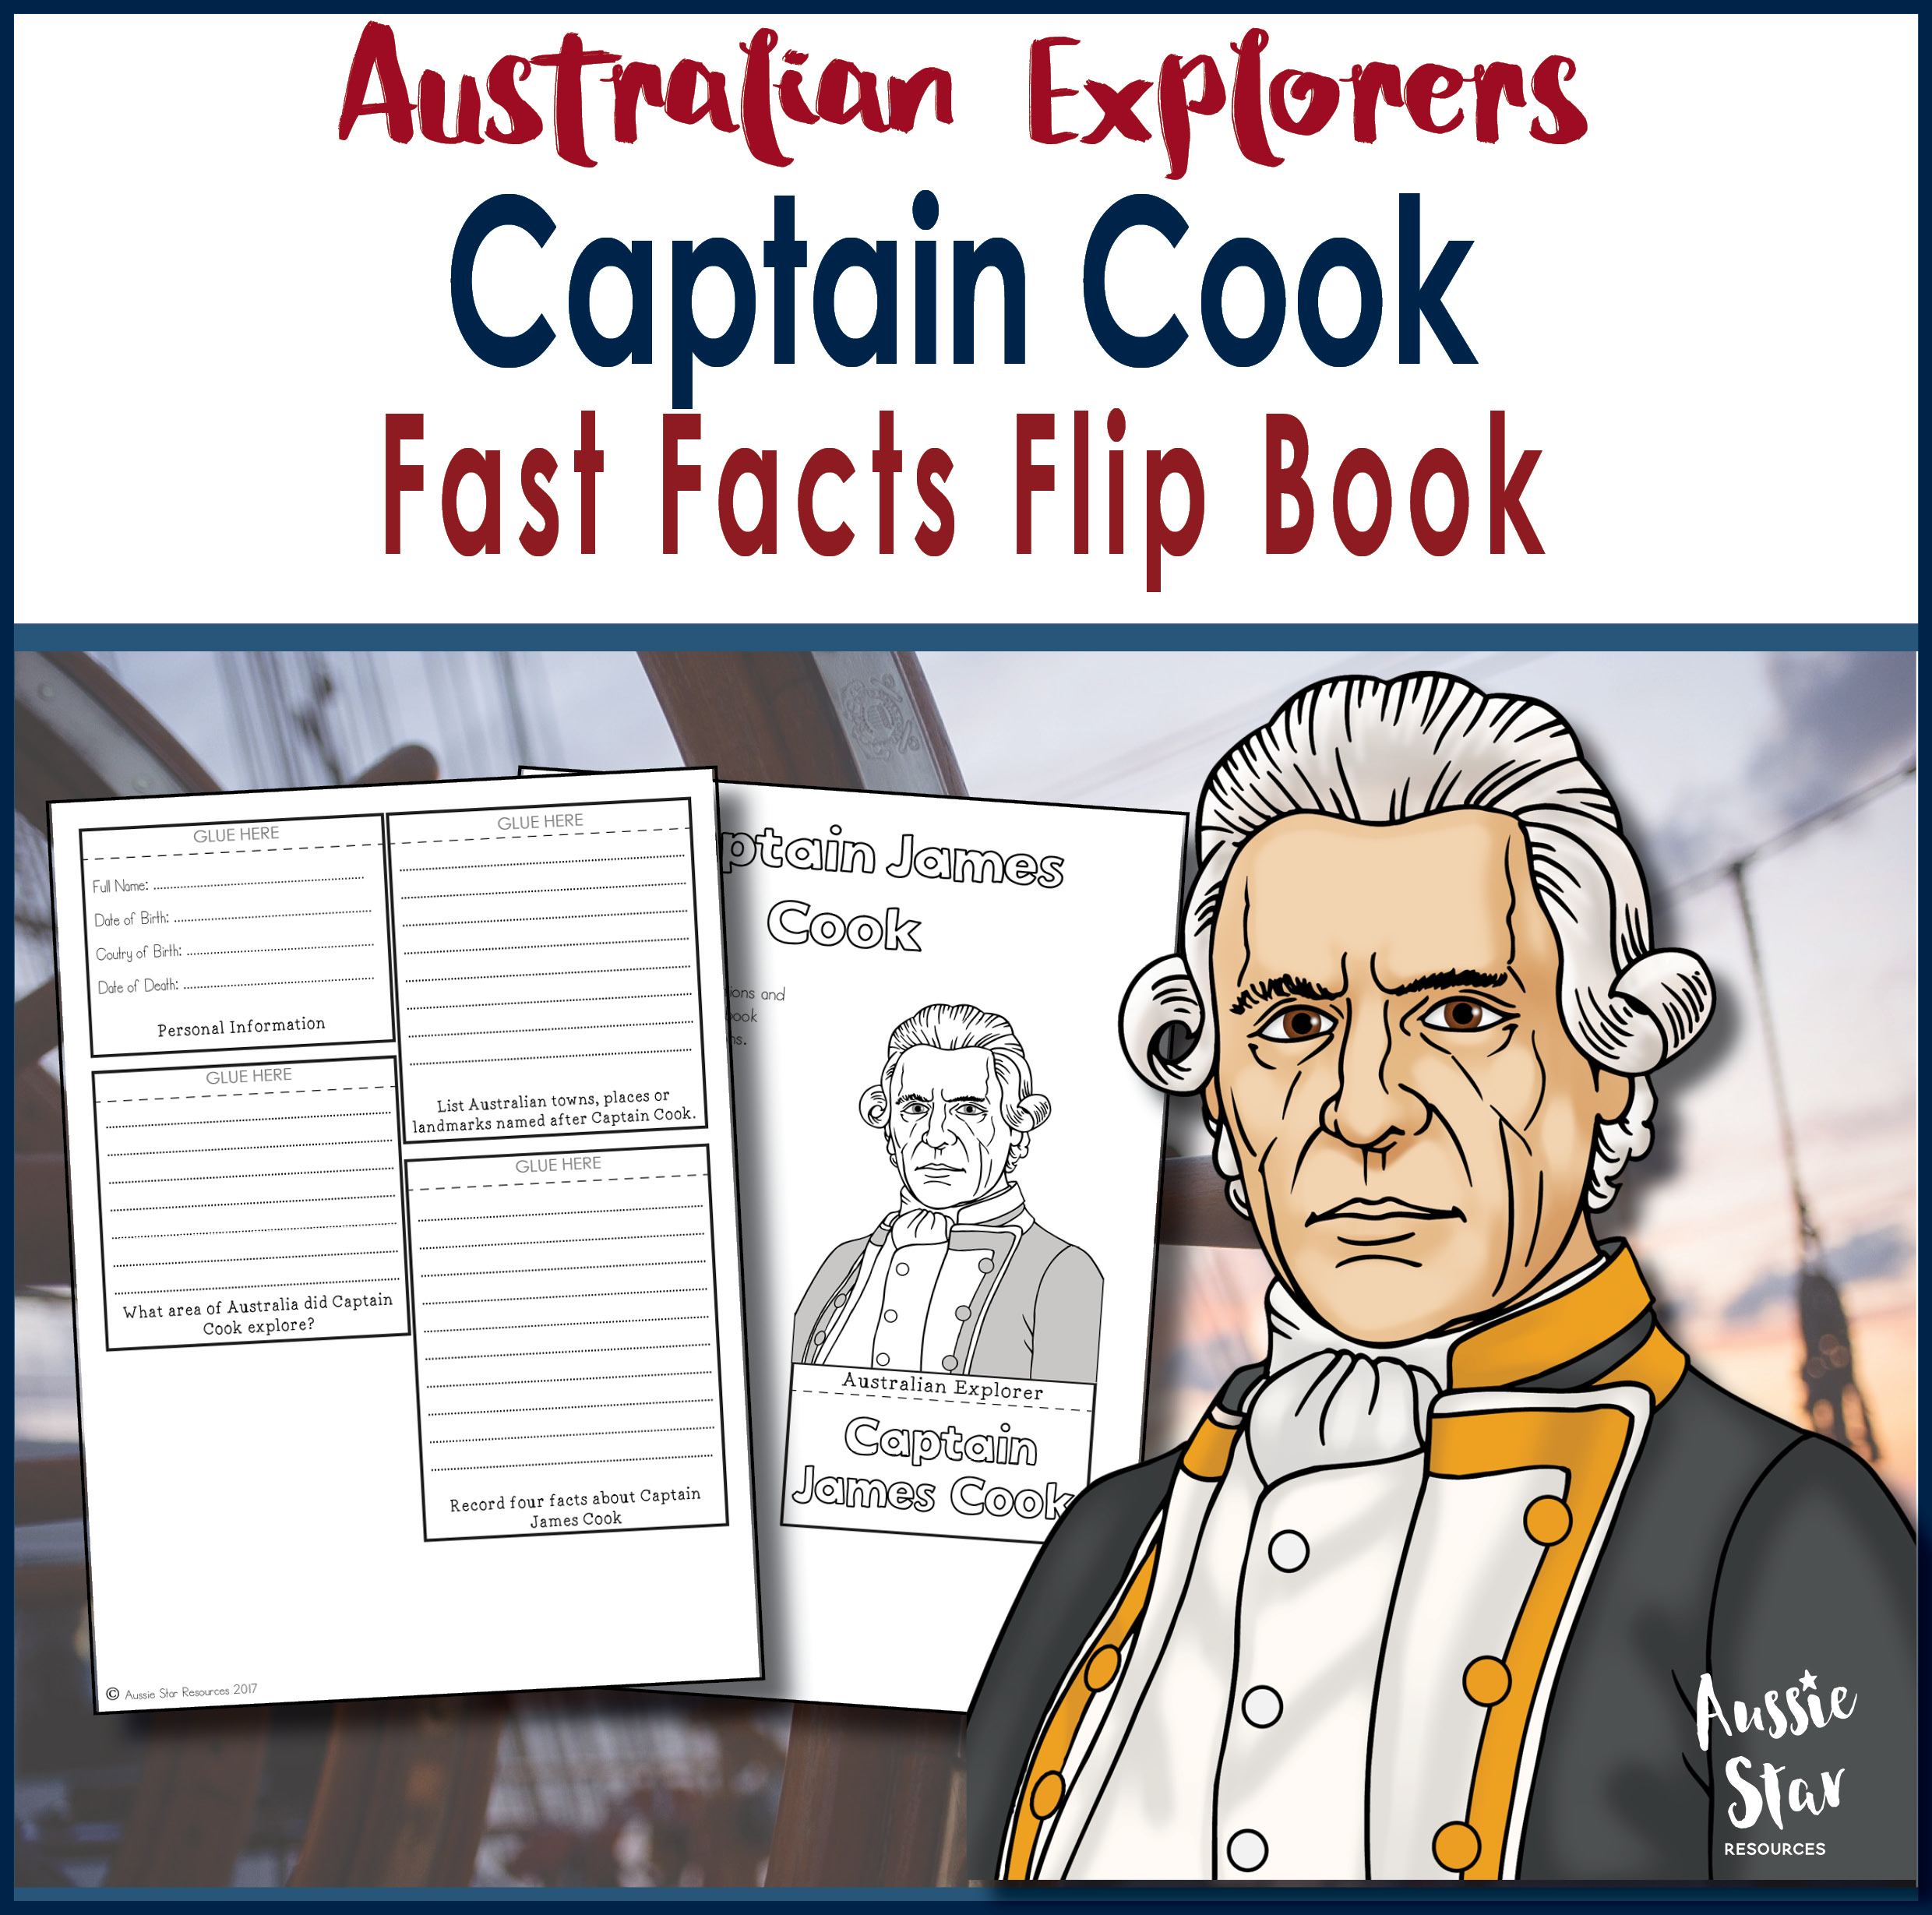 Captain Cook fast facts flip book